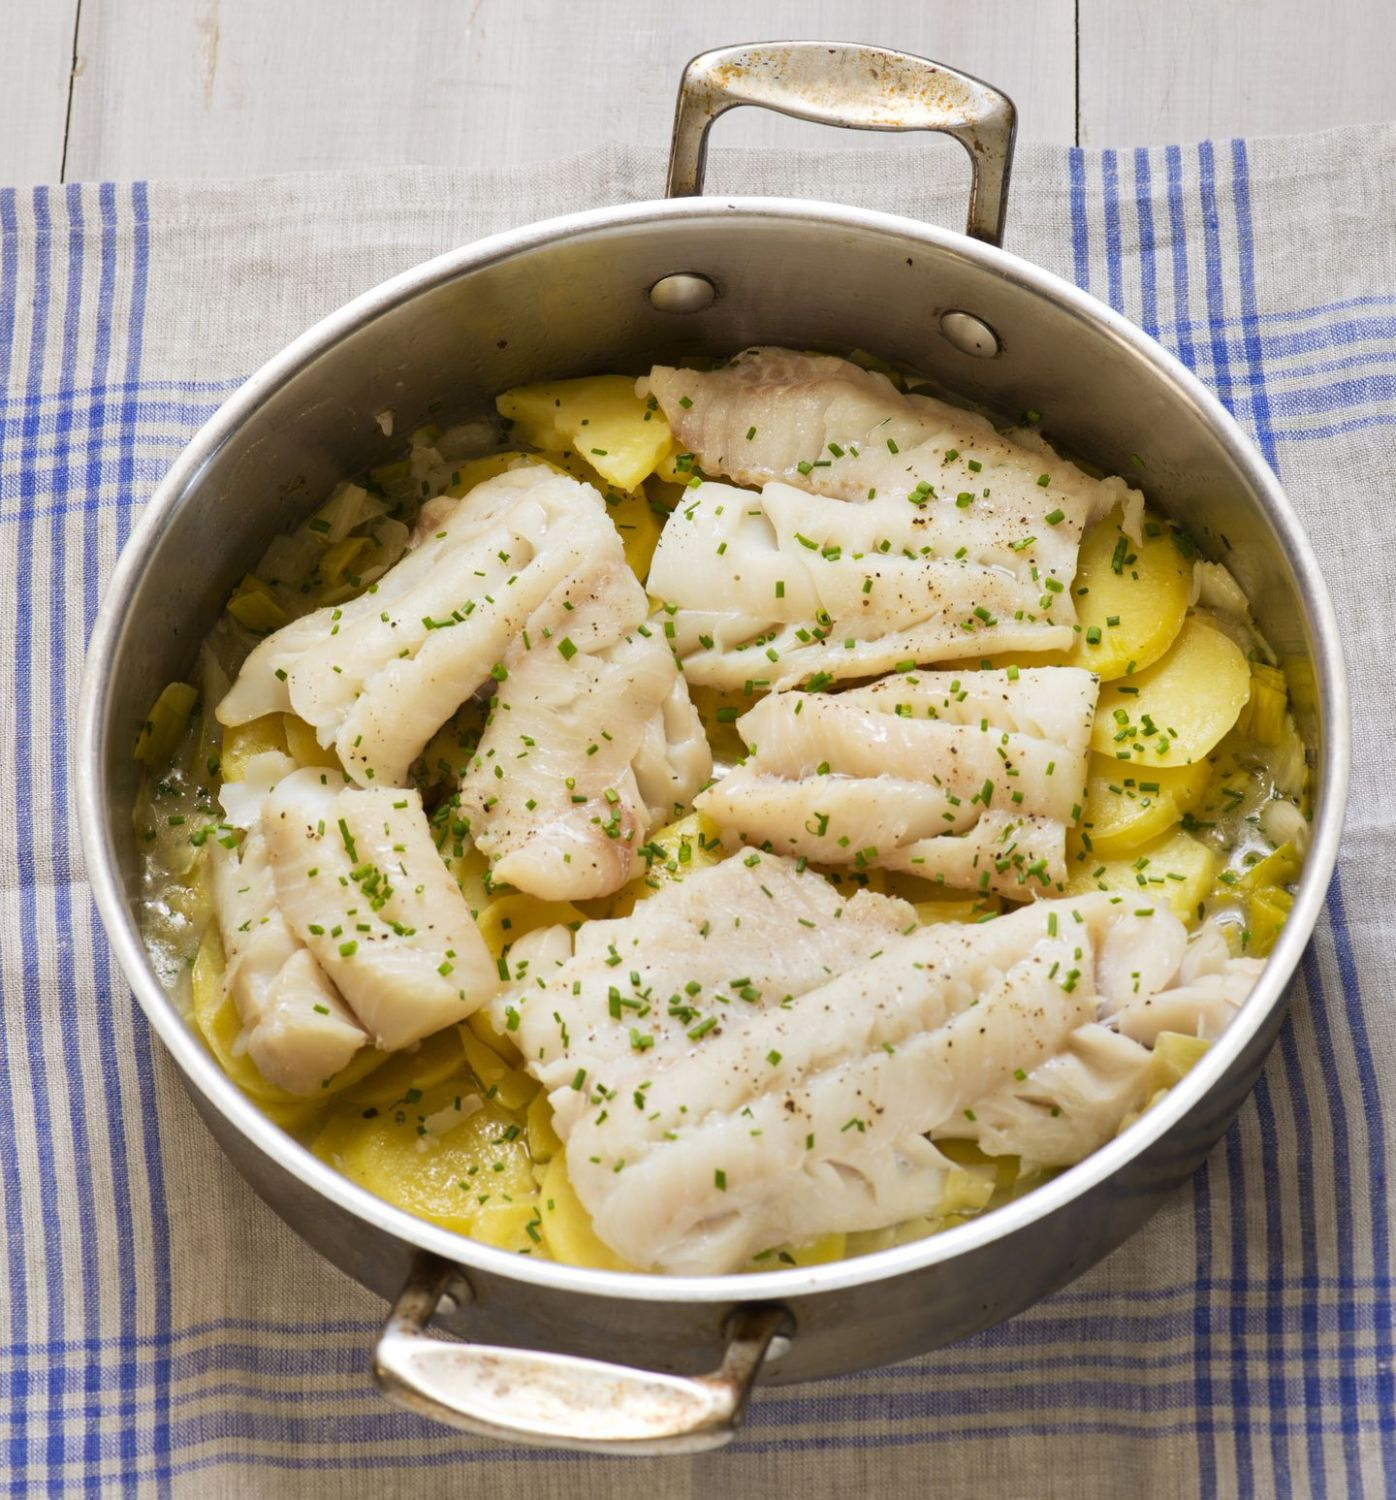 Fish with potatoes and leeks and more recipe ideas beyond fish and ..